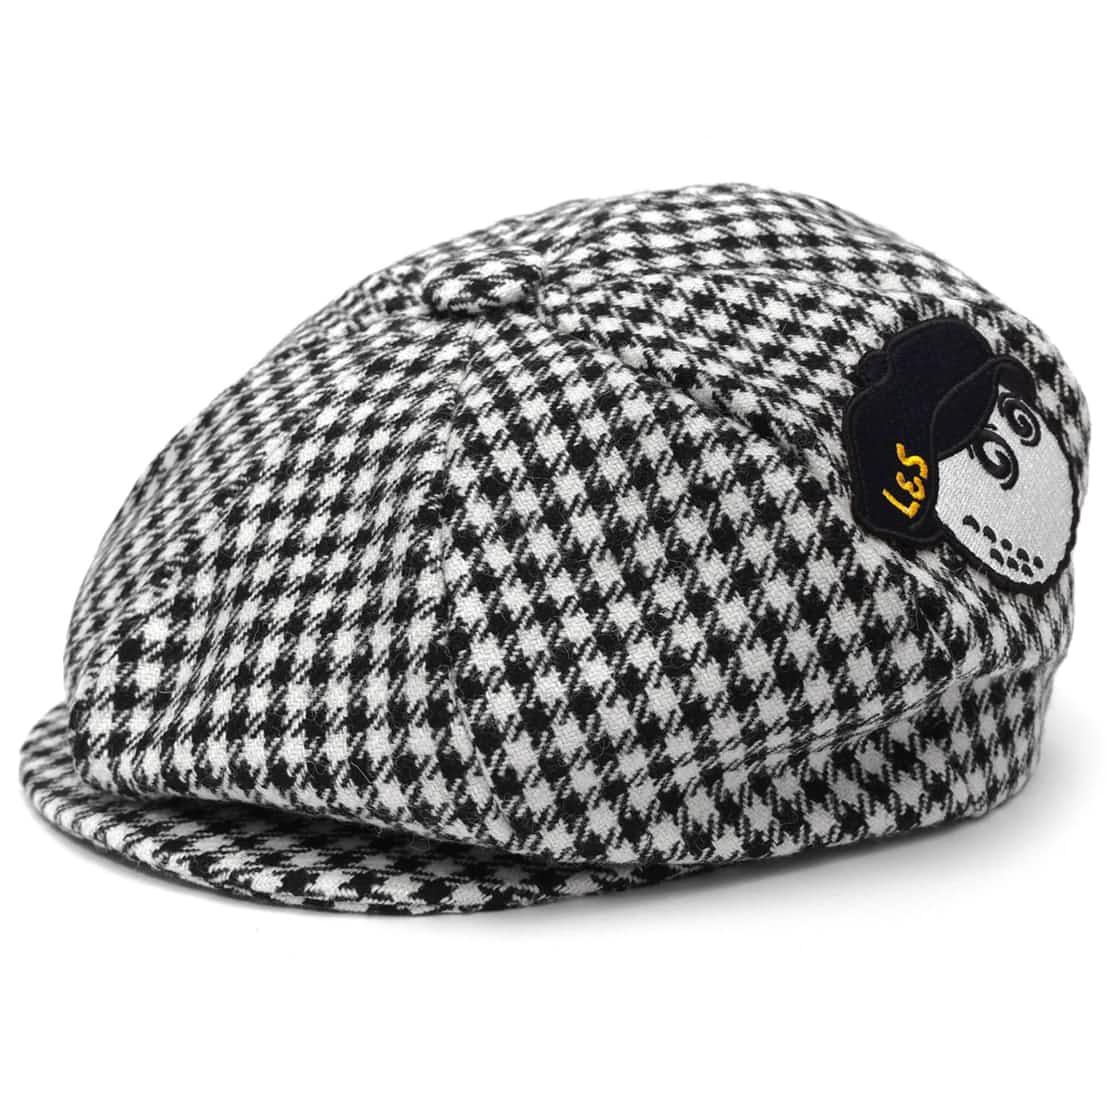 x Lyle & Scott Big Boy Cap Houndstooth - SS20